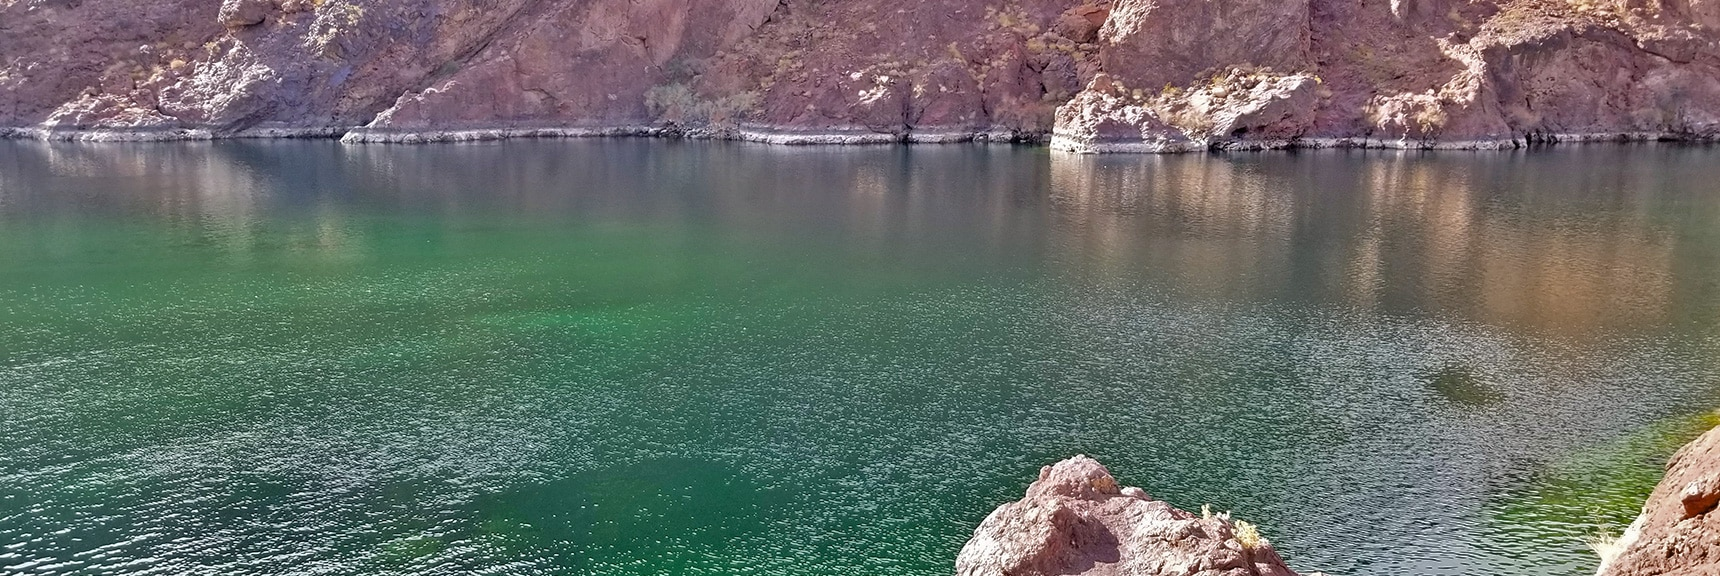 Peaceful, Turquoise Colorado River. Water Supply to Southwest U.S. | Arizona Hot Spring | Liberty Bell Arch | Lake Mead National Recreation Area, Arizona